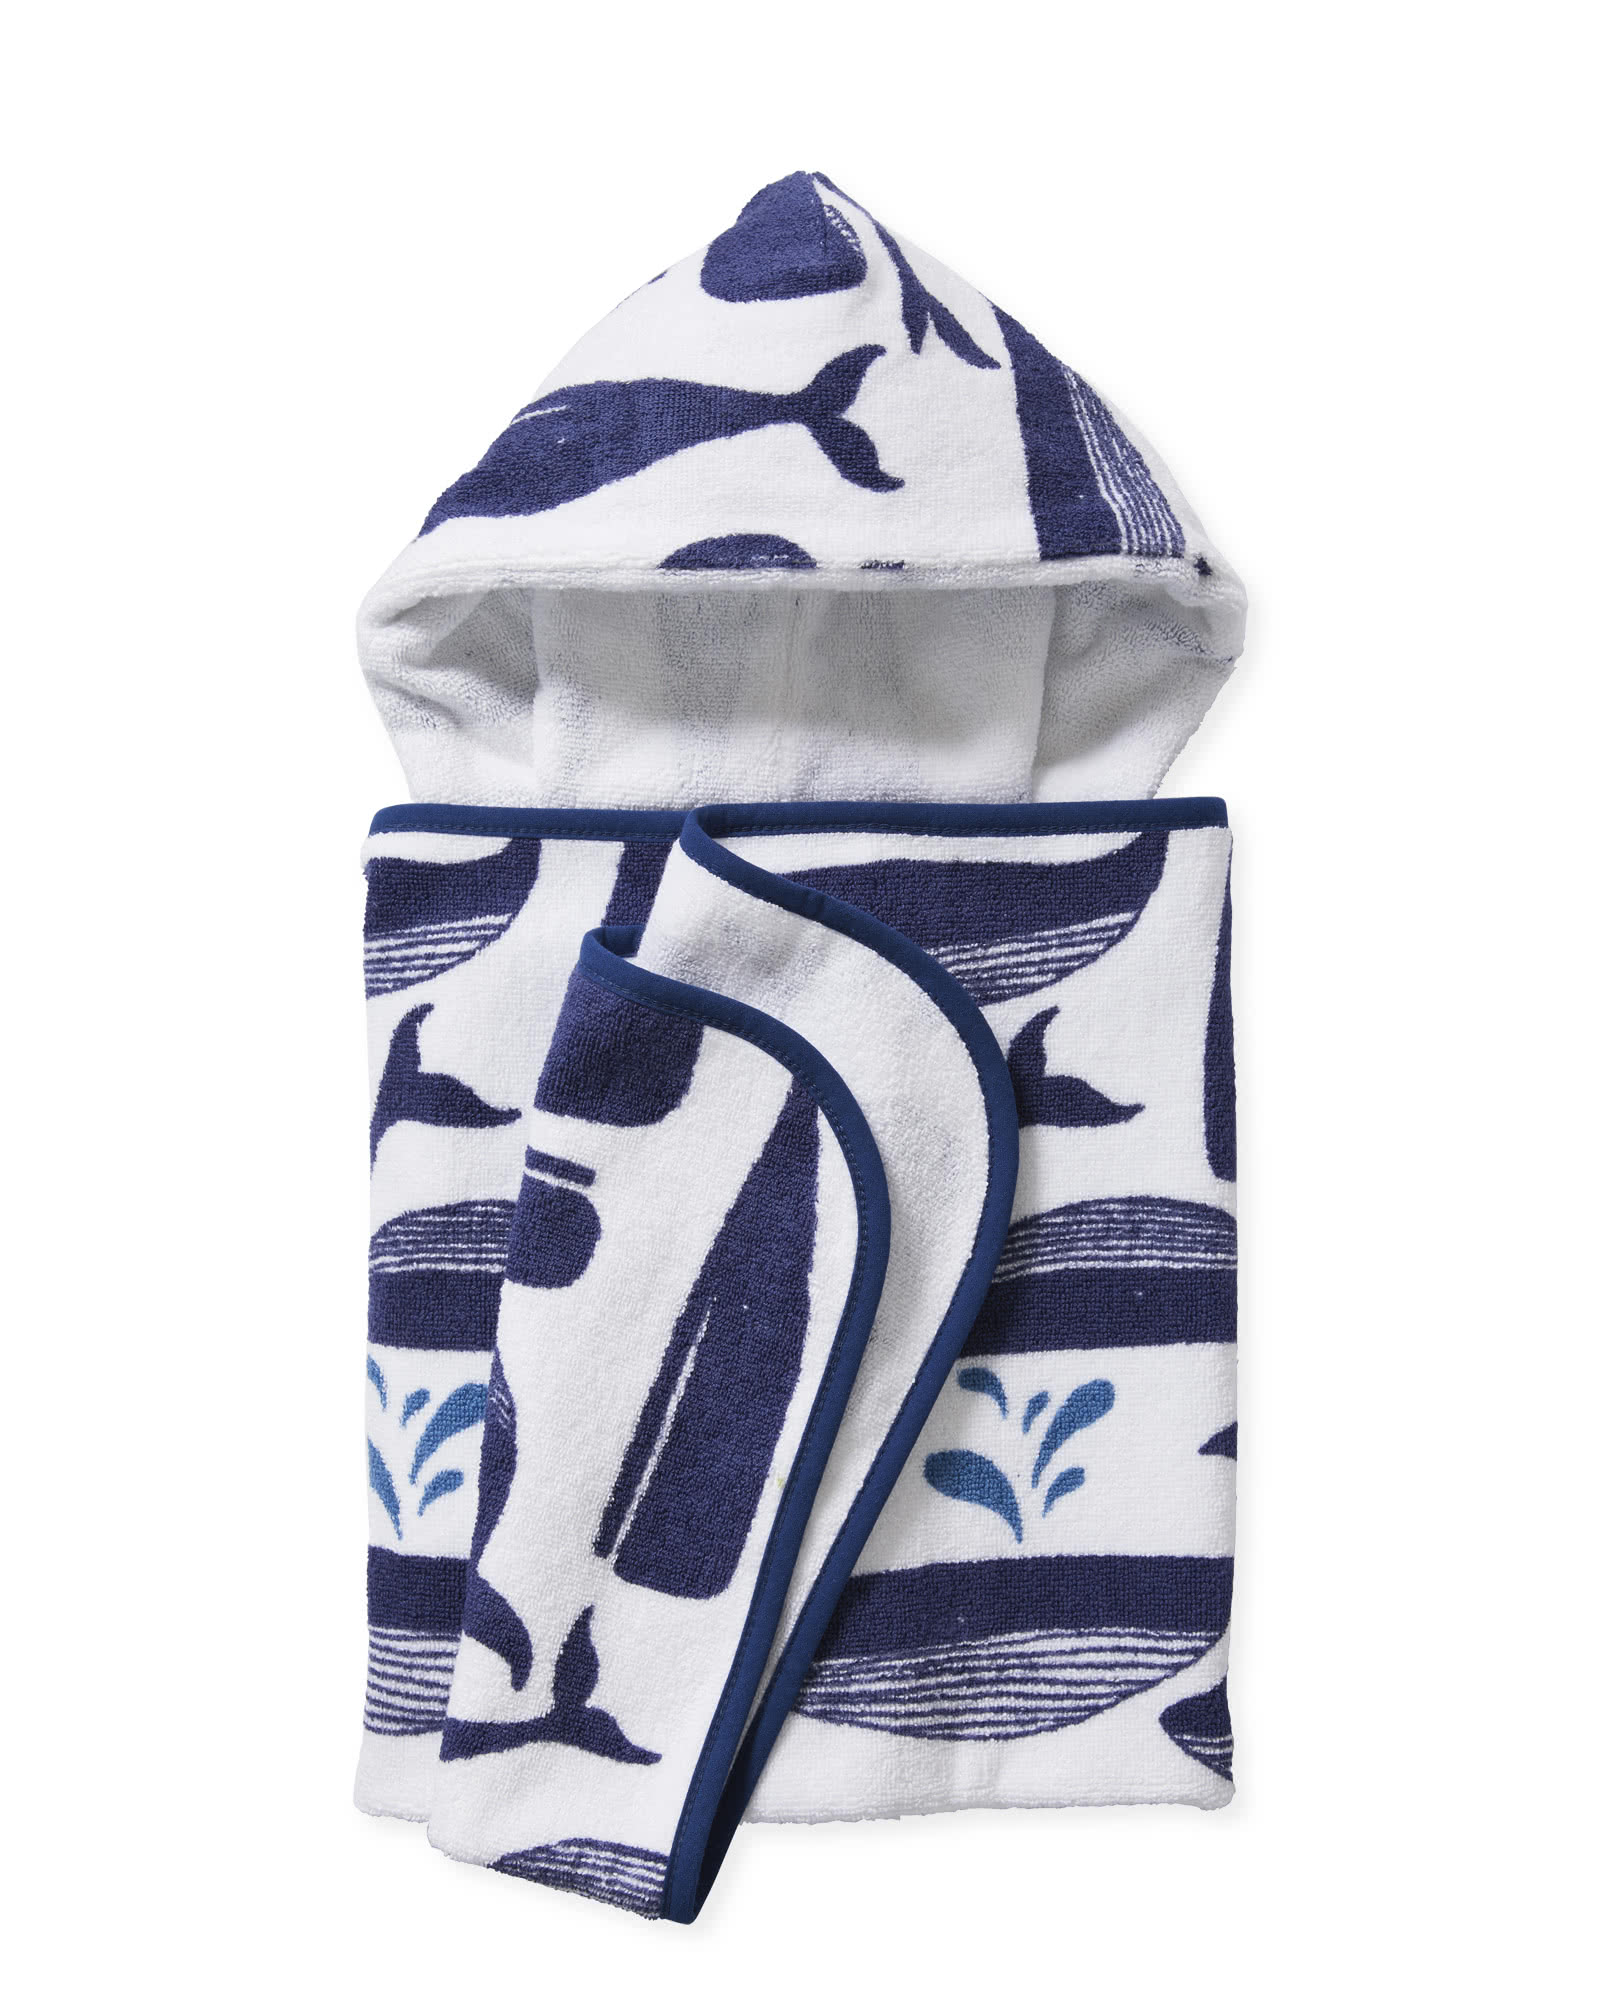 Melville Hooded Towel,